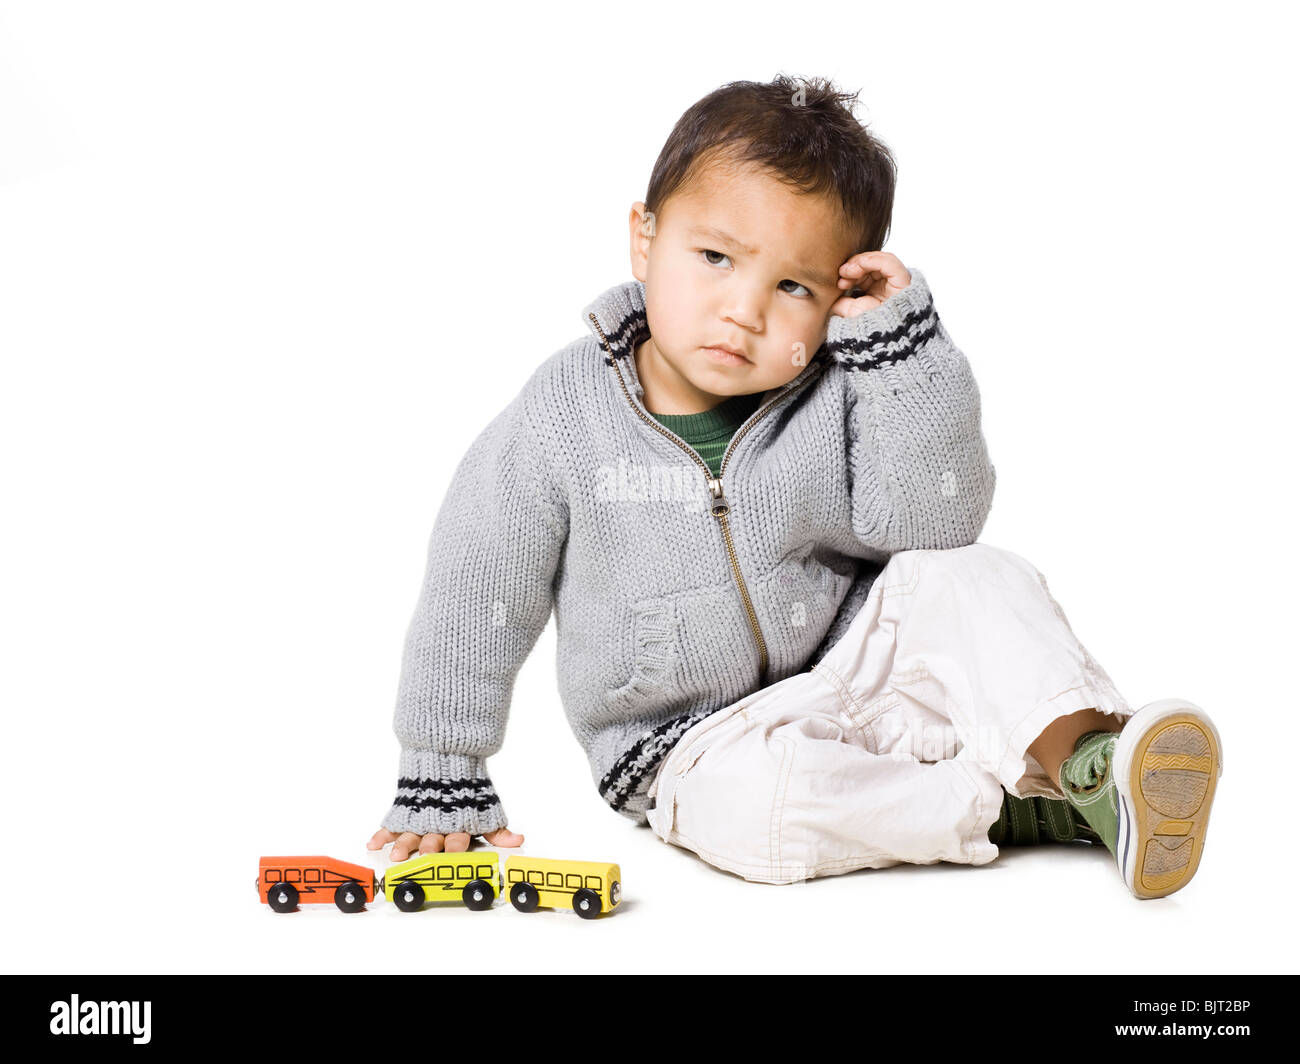 Studio portrait of boy (18-23 months) playing with toy car - Stock Image